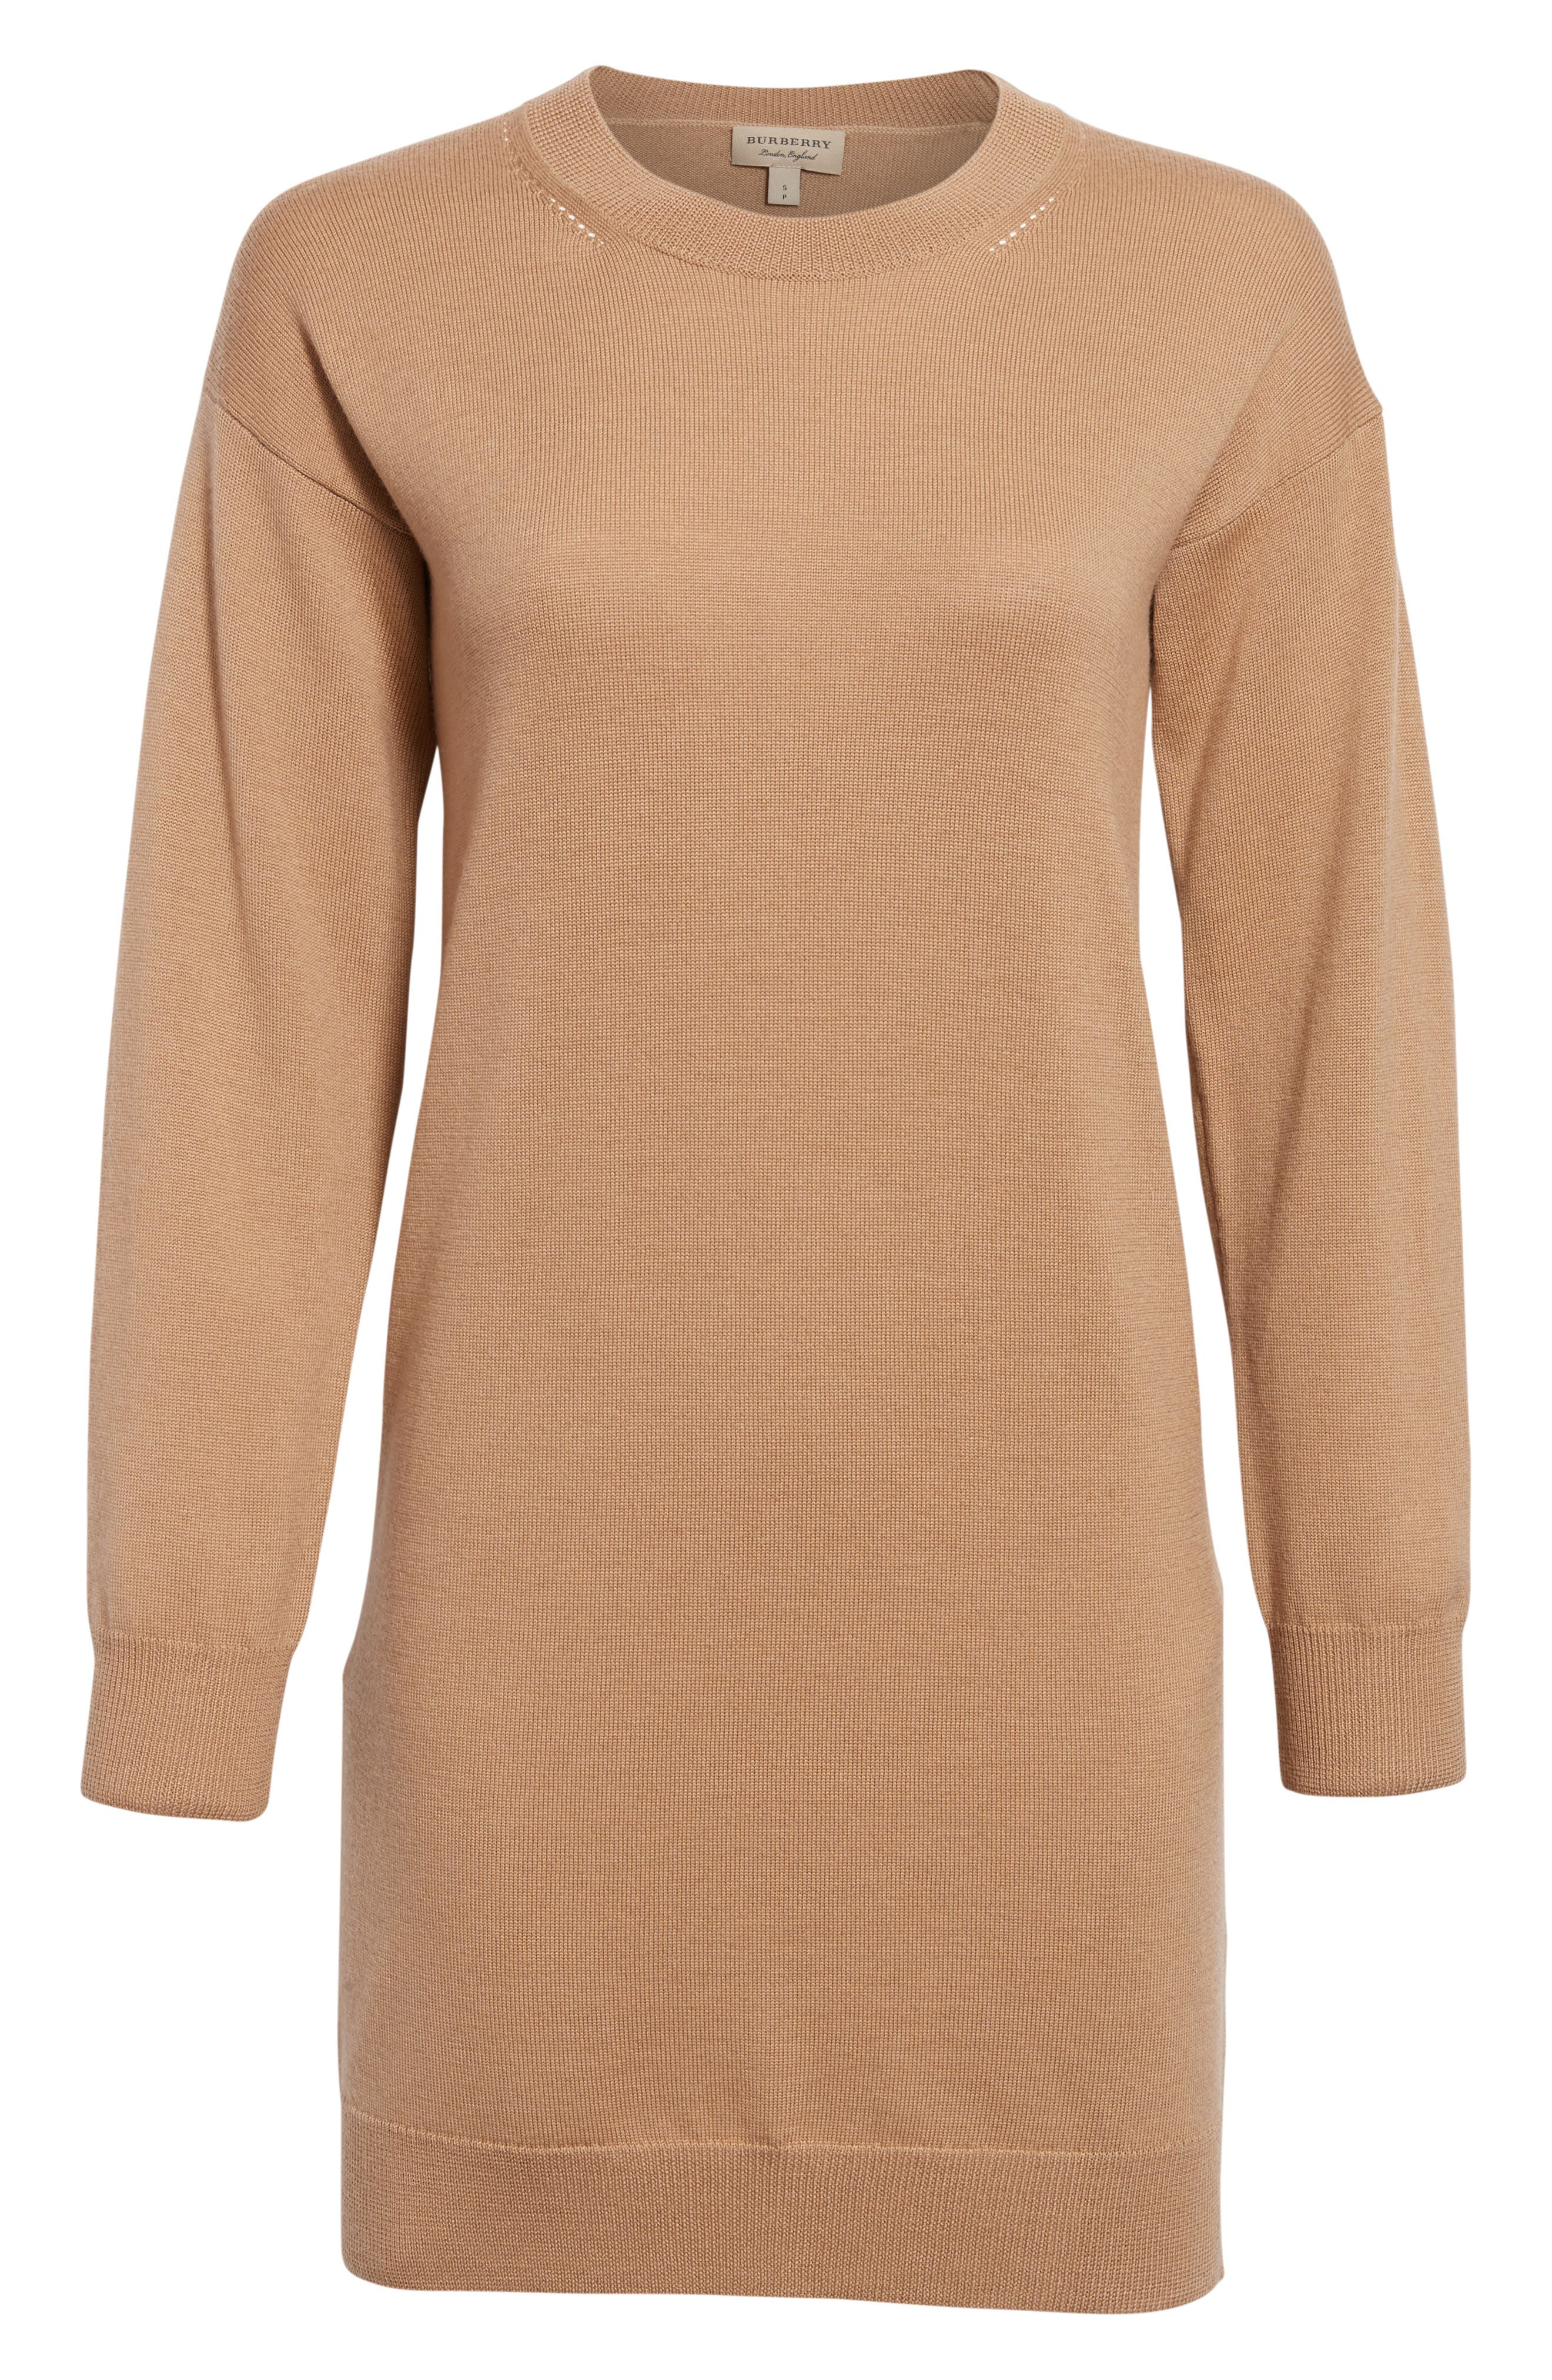 BURBERRY, Alewater Elbow Patch Merino Wool Dress, Alternate thumbnail 7, color, CAMEL